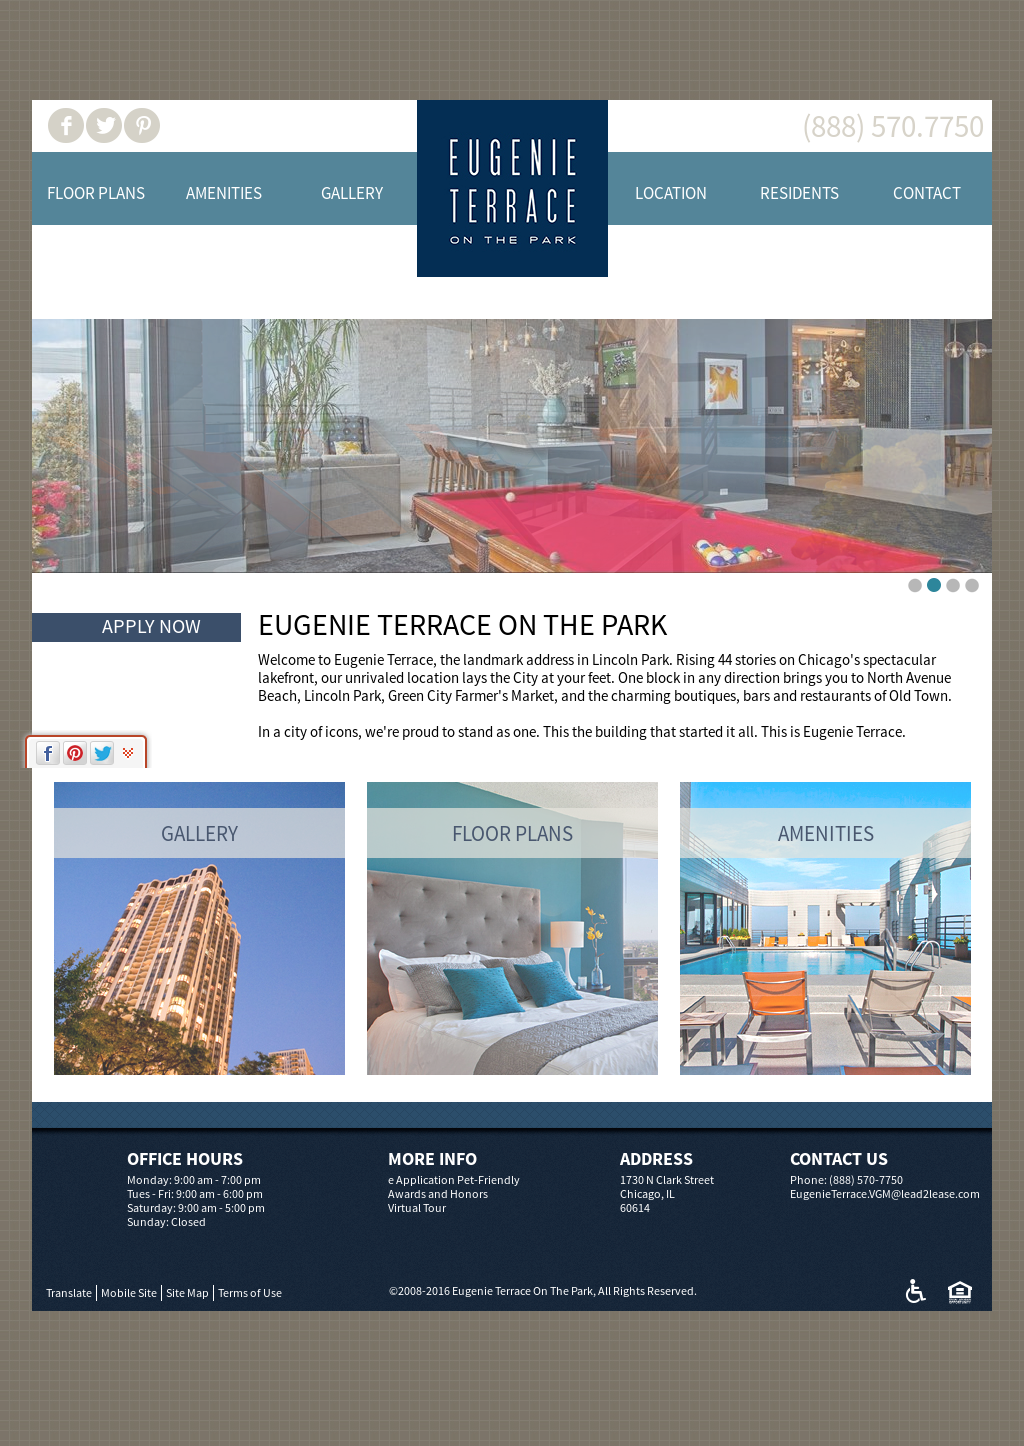 terrace park dating site See all available apartments for rent at central park terrace in denver, co central park terrace has rental units ranging from 450-620 sq ft.